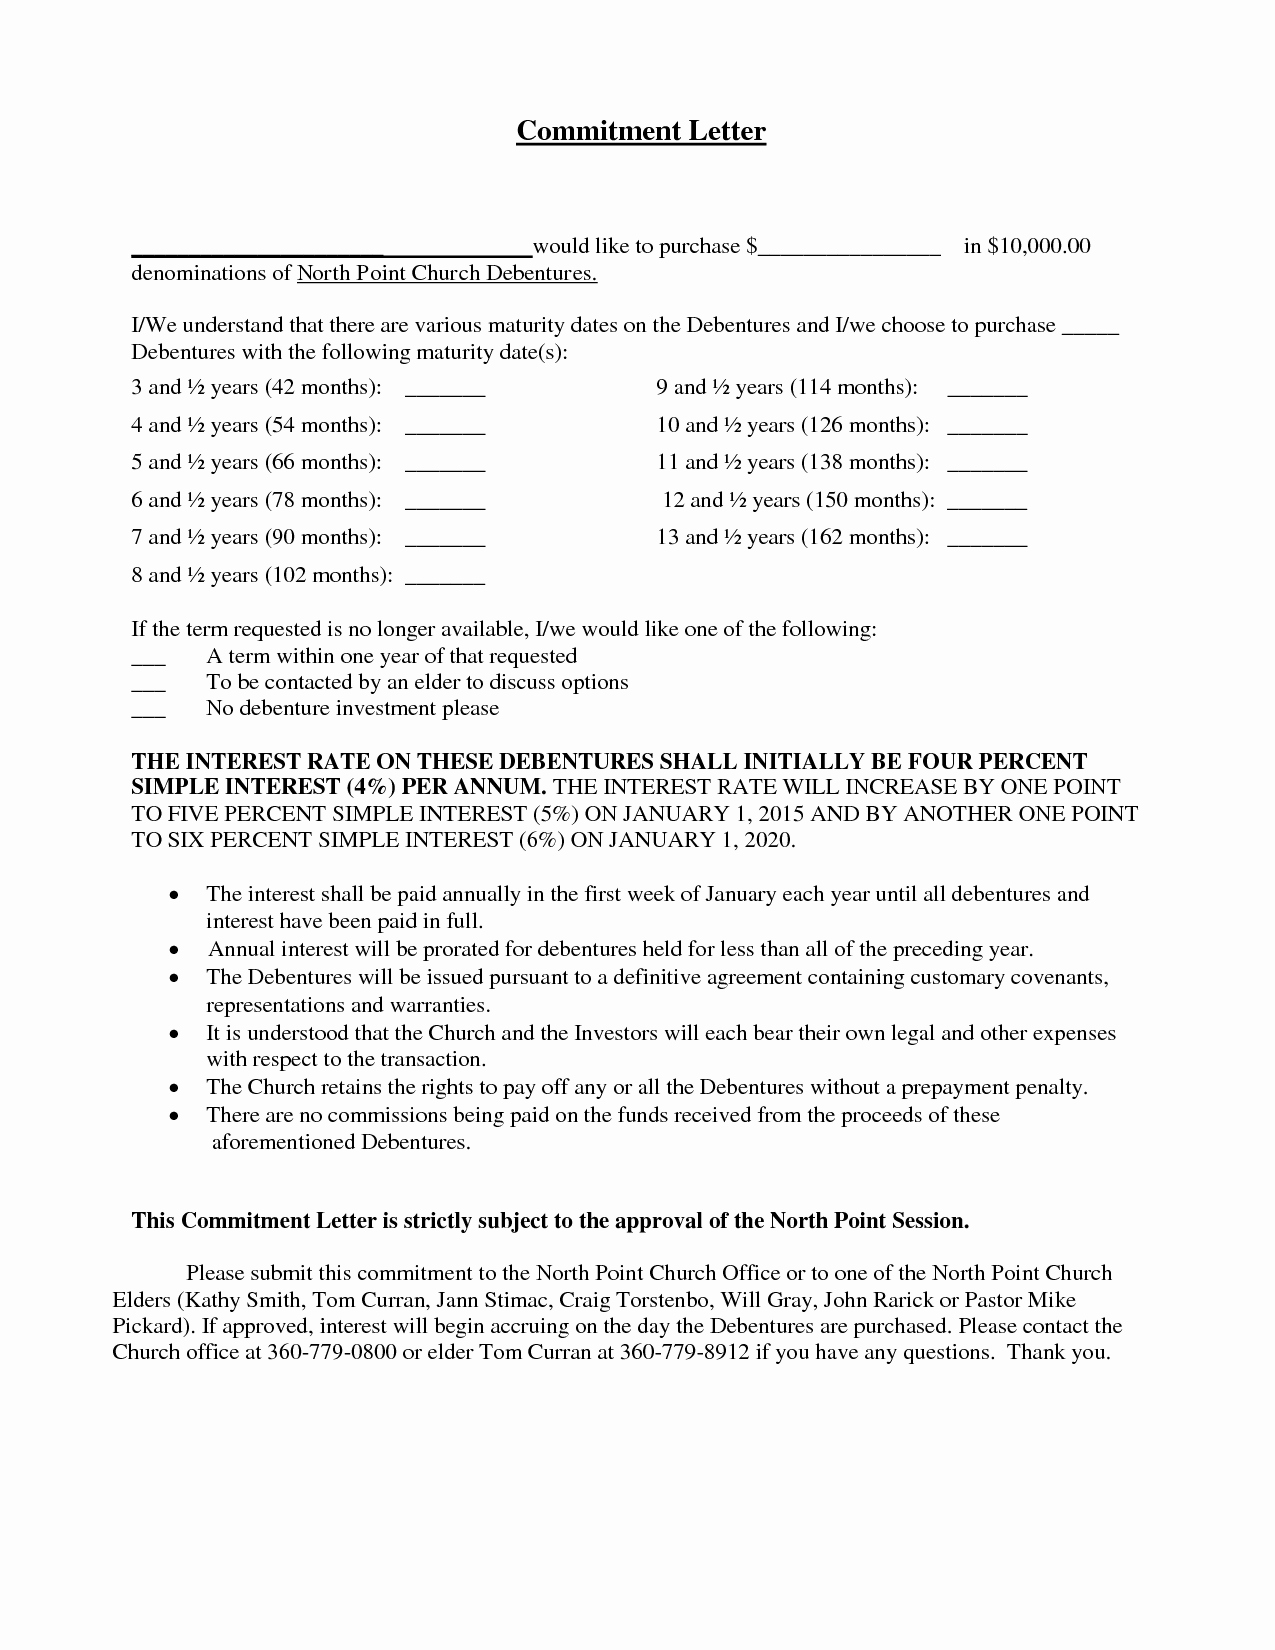 Mortgage Pre Approval Letter Template Inspirational Mortgage Pre Approval Mortgage Pre Approval Letter Template